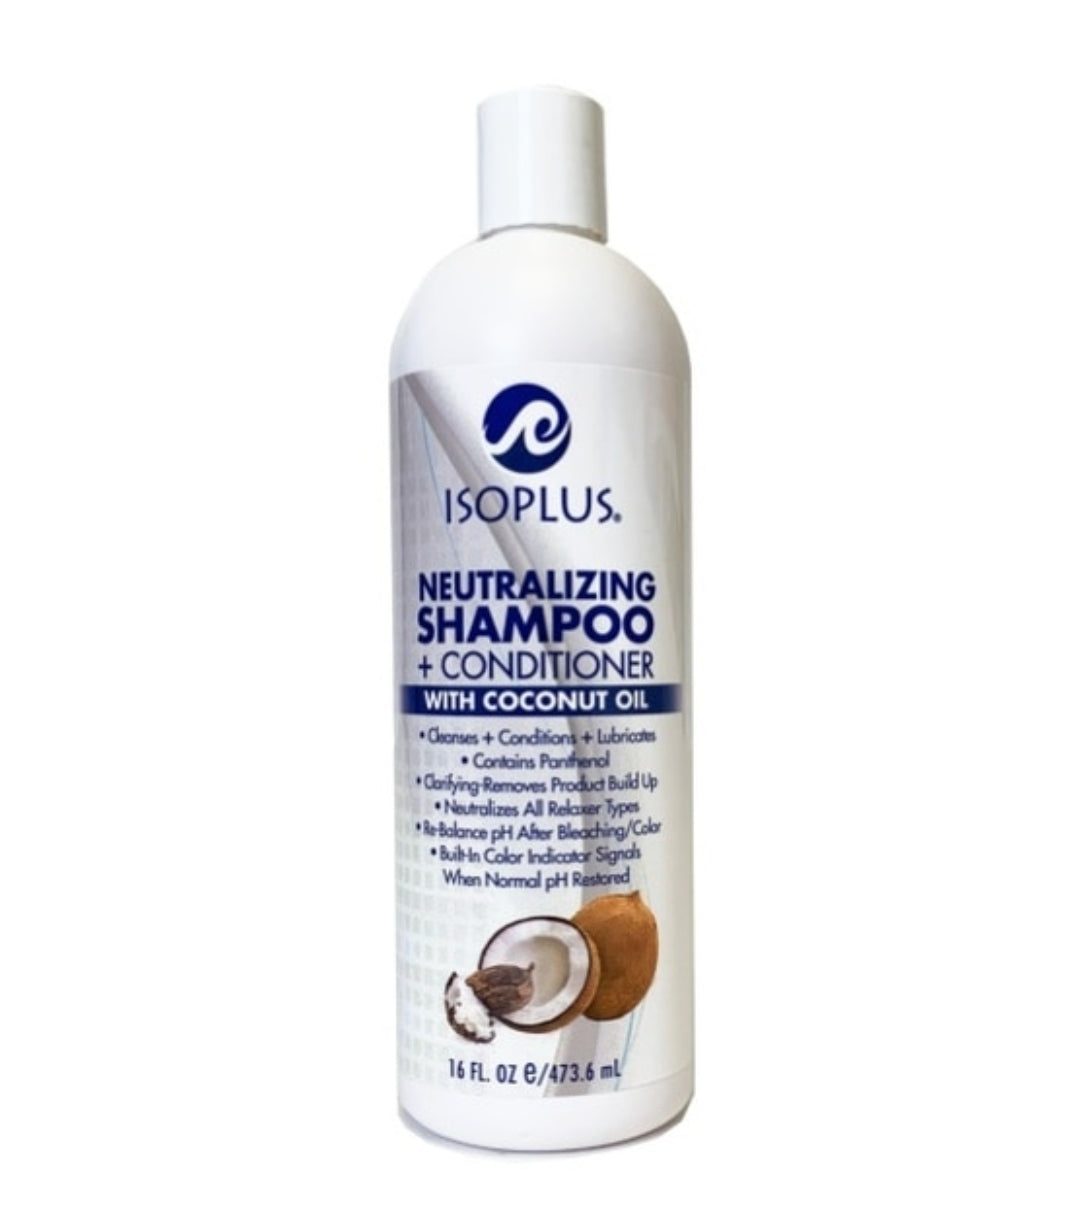 Isoplus-Neutralizing Shampoo + Conditioner with Coconut Oil 16oz